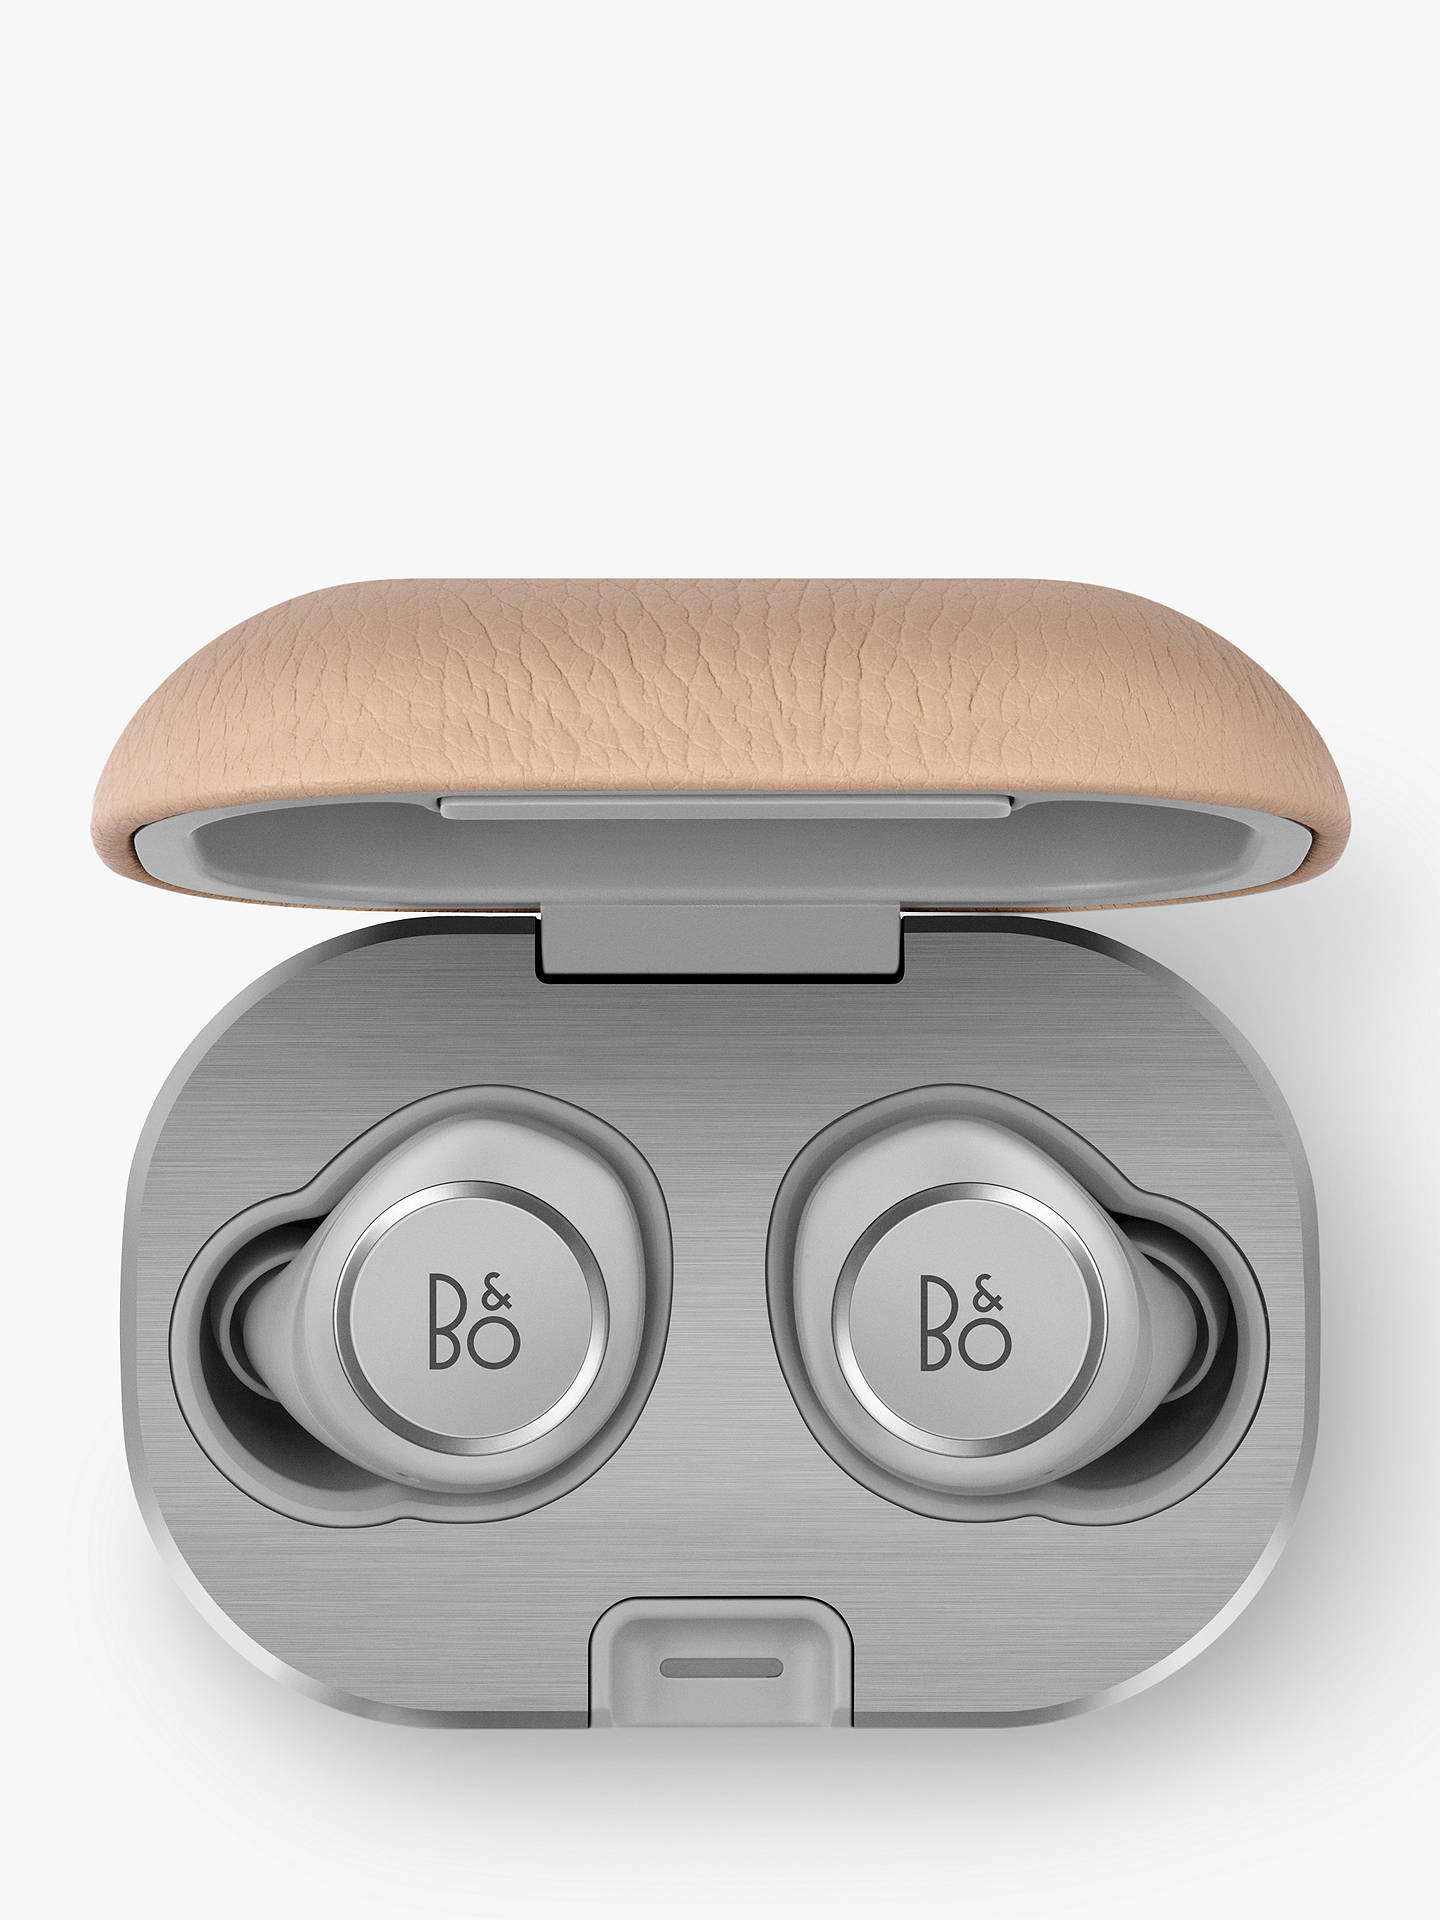 Buy Bang & Olufsen Beoplay E8 2.0 True Wireless Bluetooth In-Ear Headphones with Mic/Remote, Natural Online at johnlewis.com